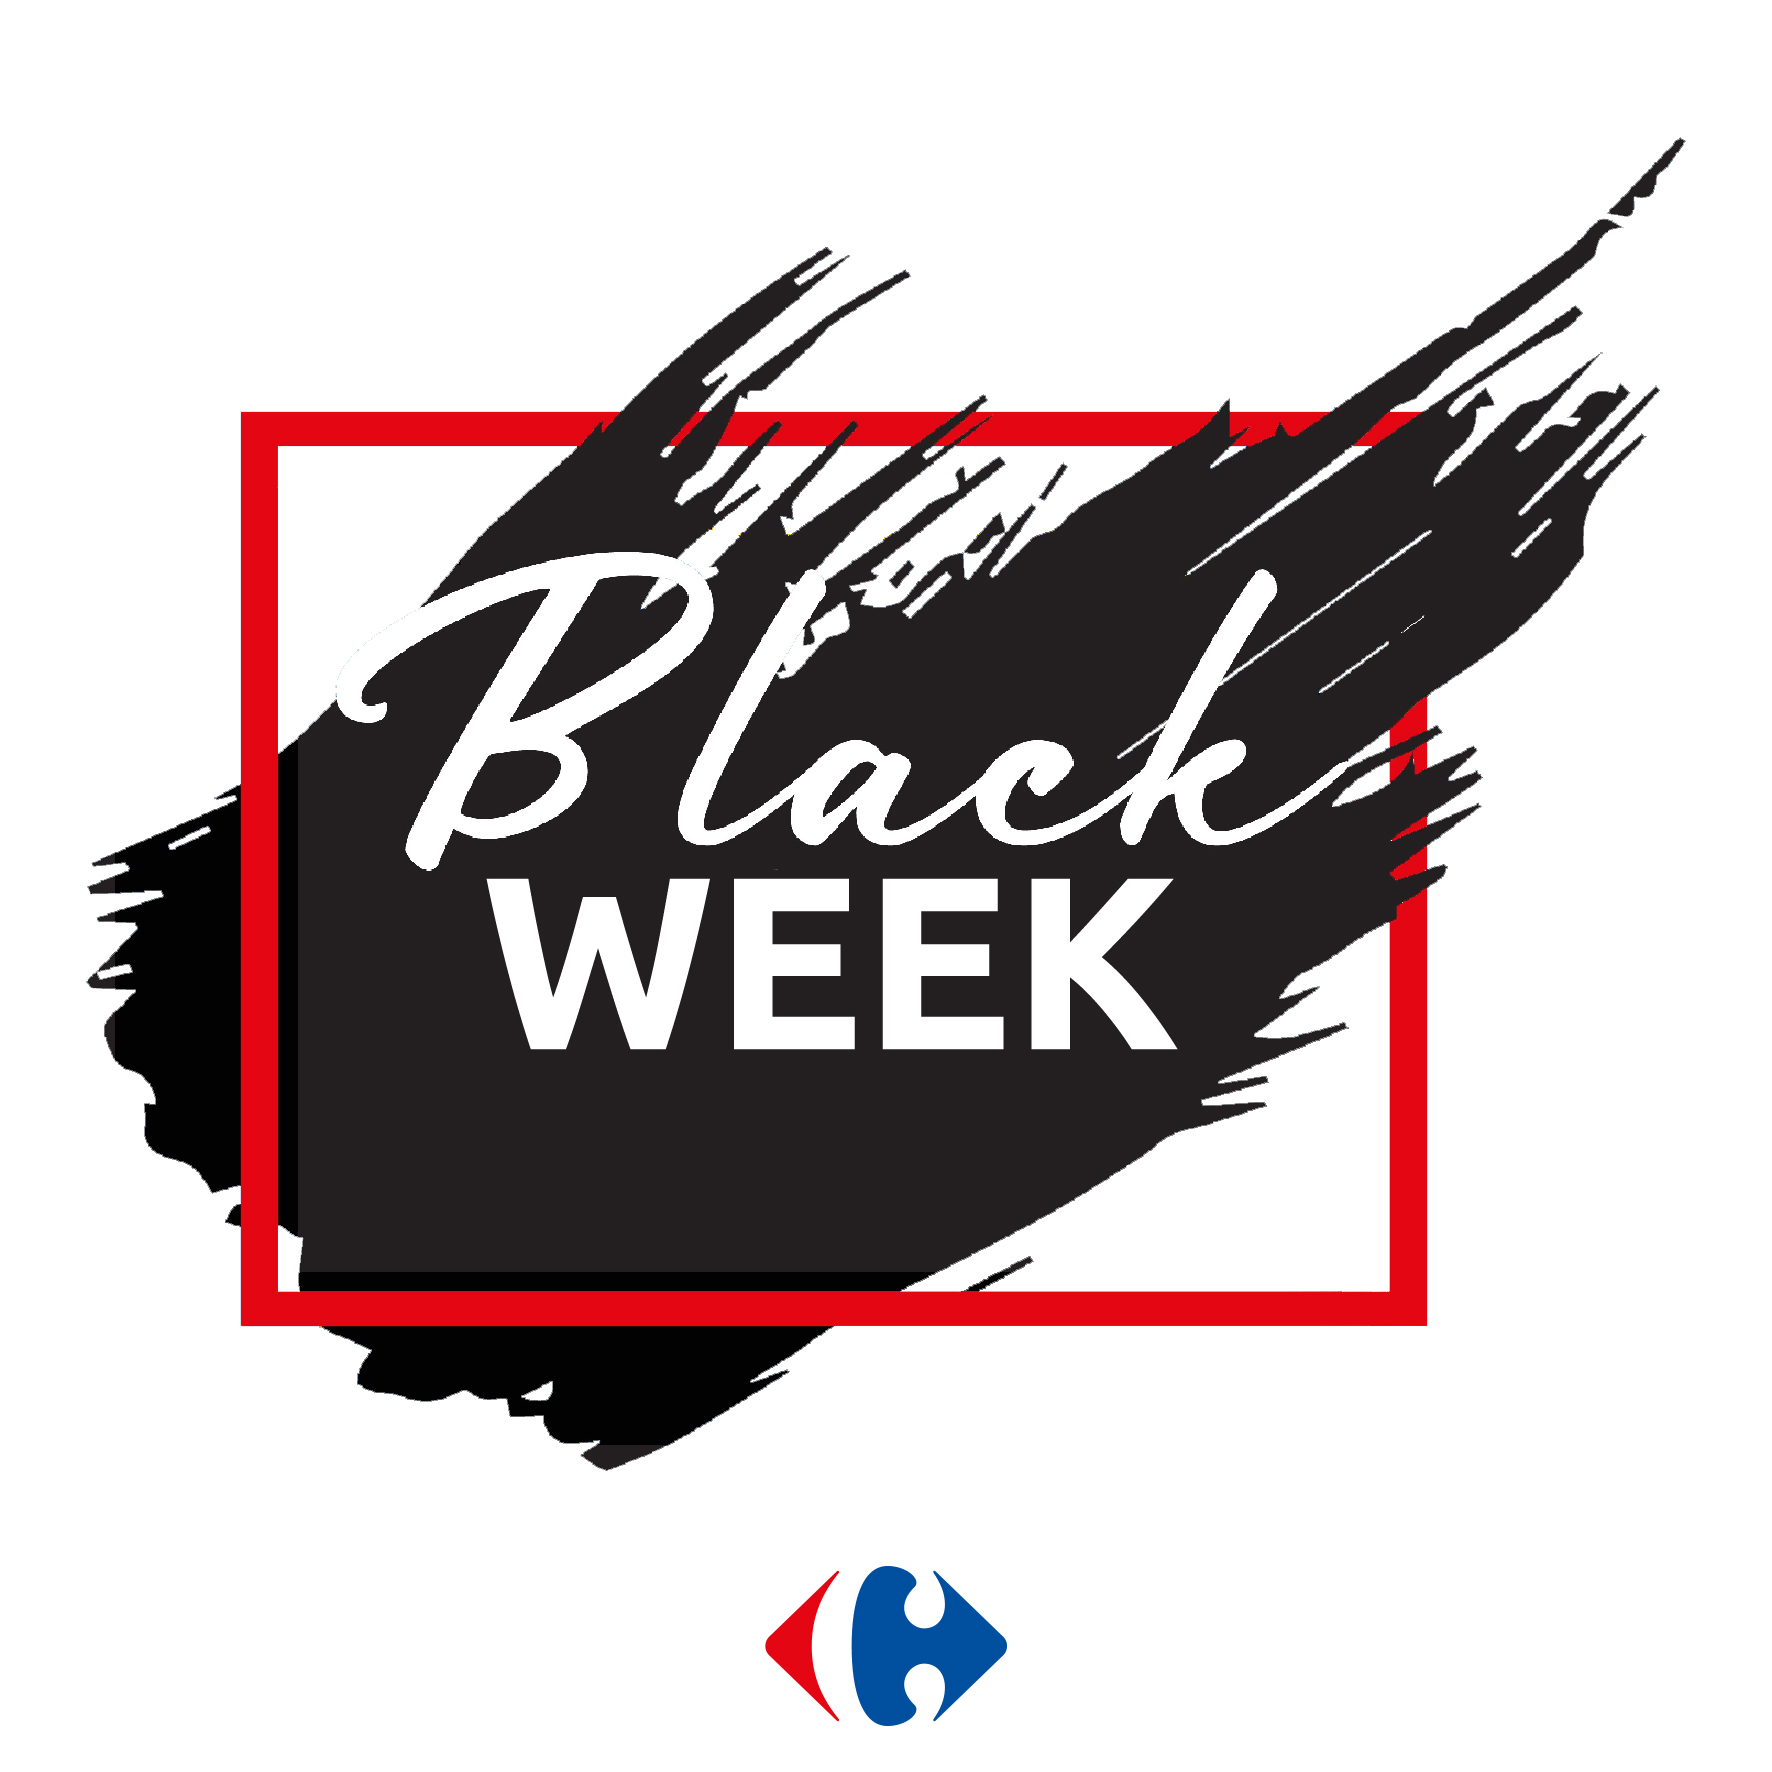 Carrefour - Black Week